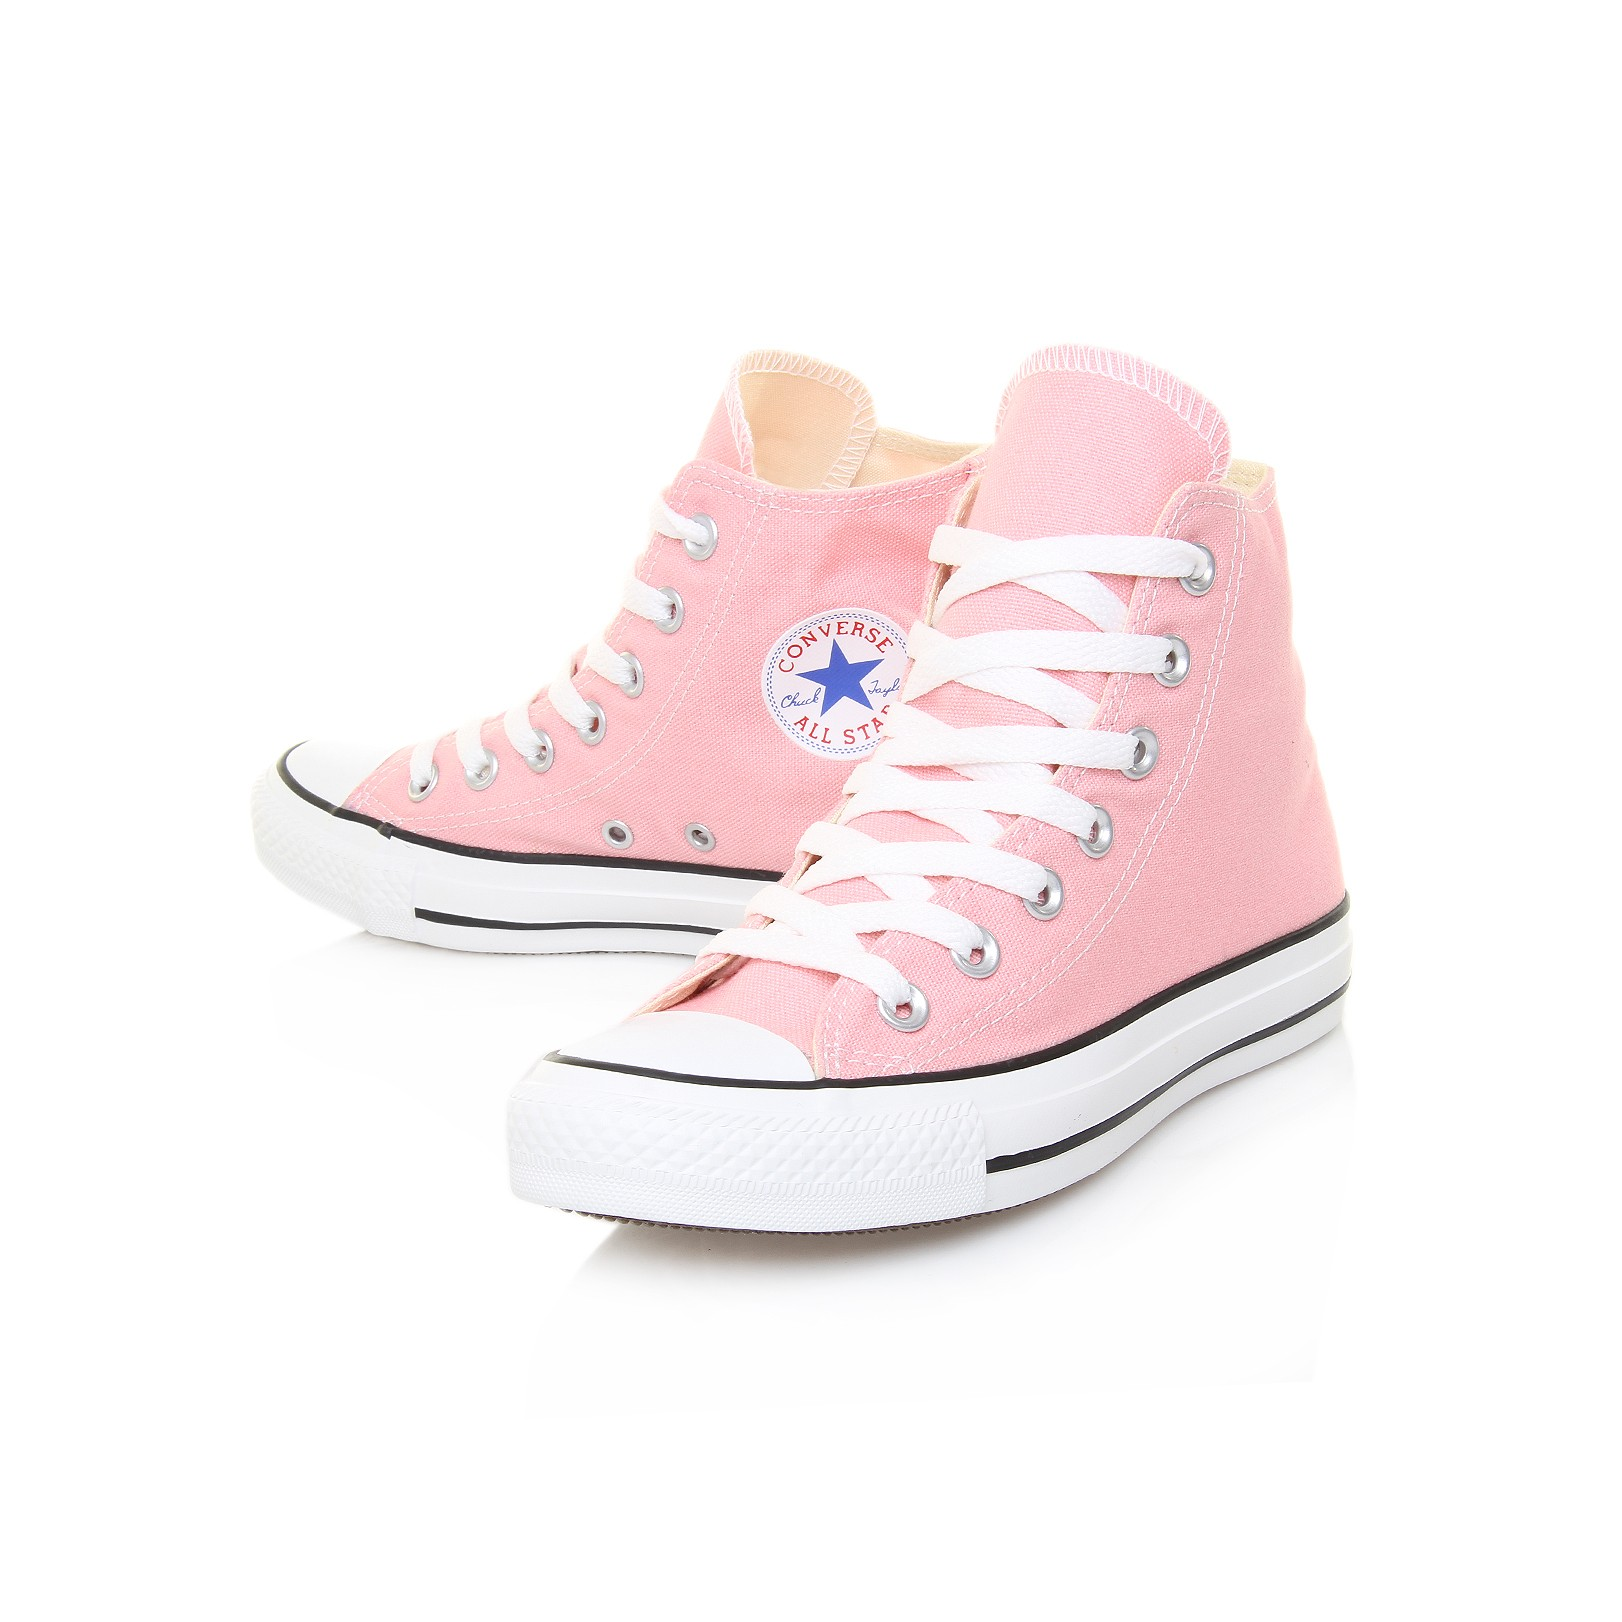 light pink converse shoes